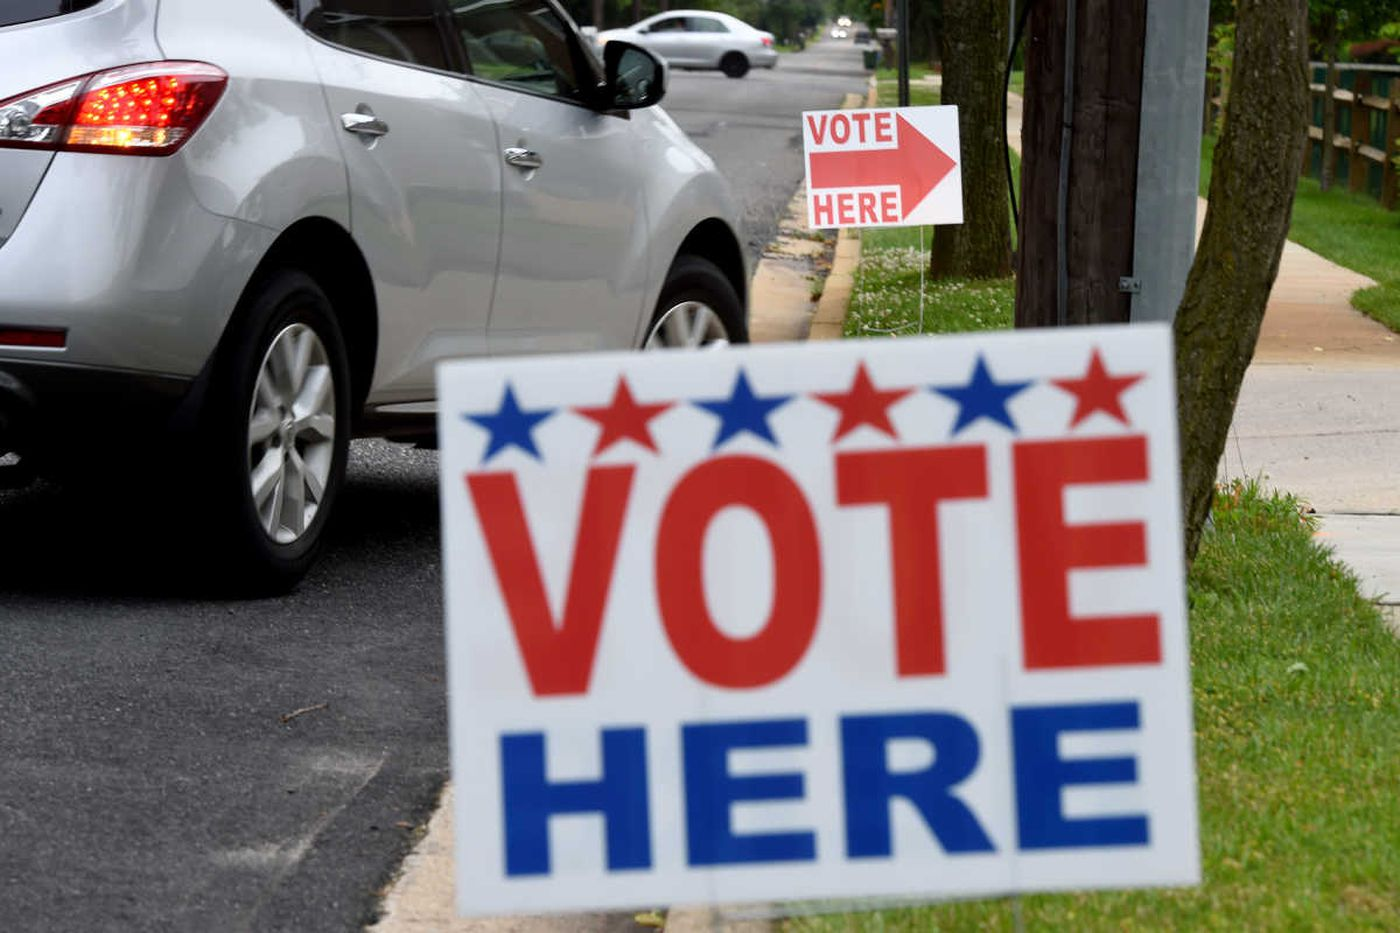 New Jersey voters heading to polls for 2017 primary